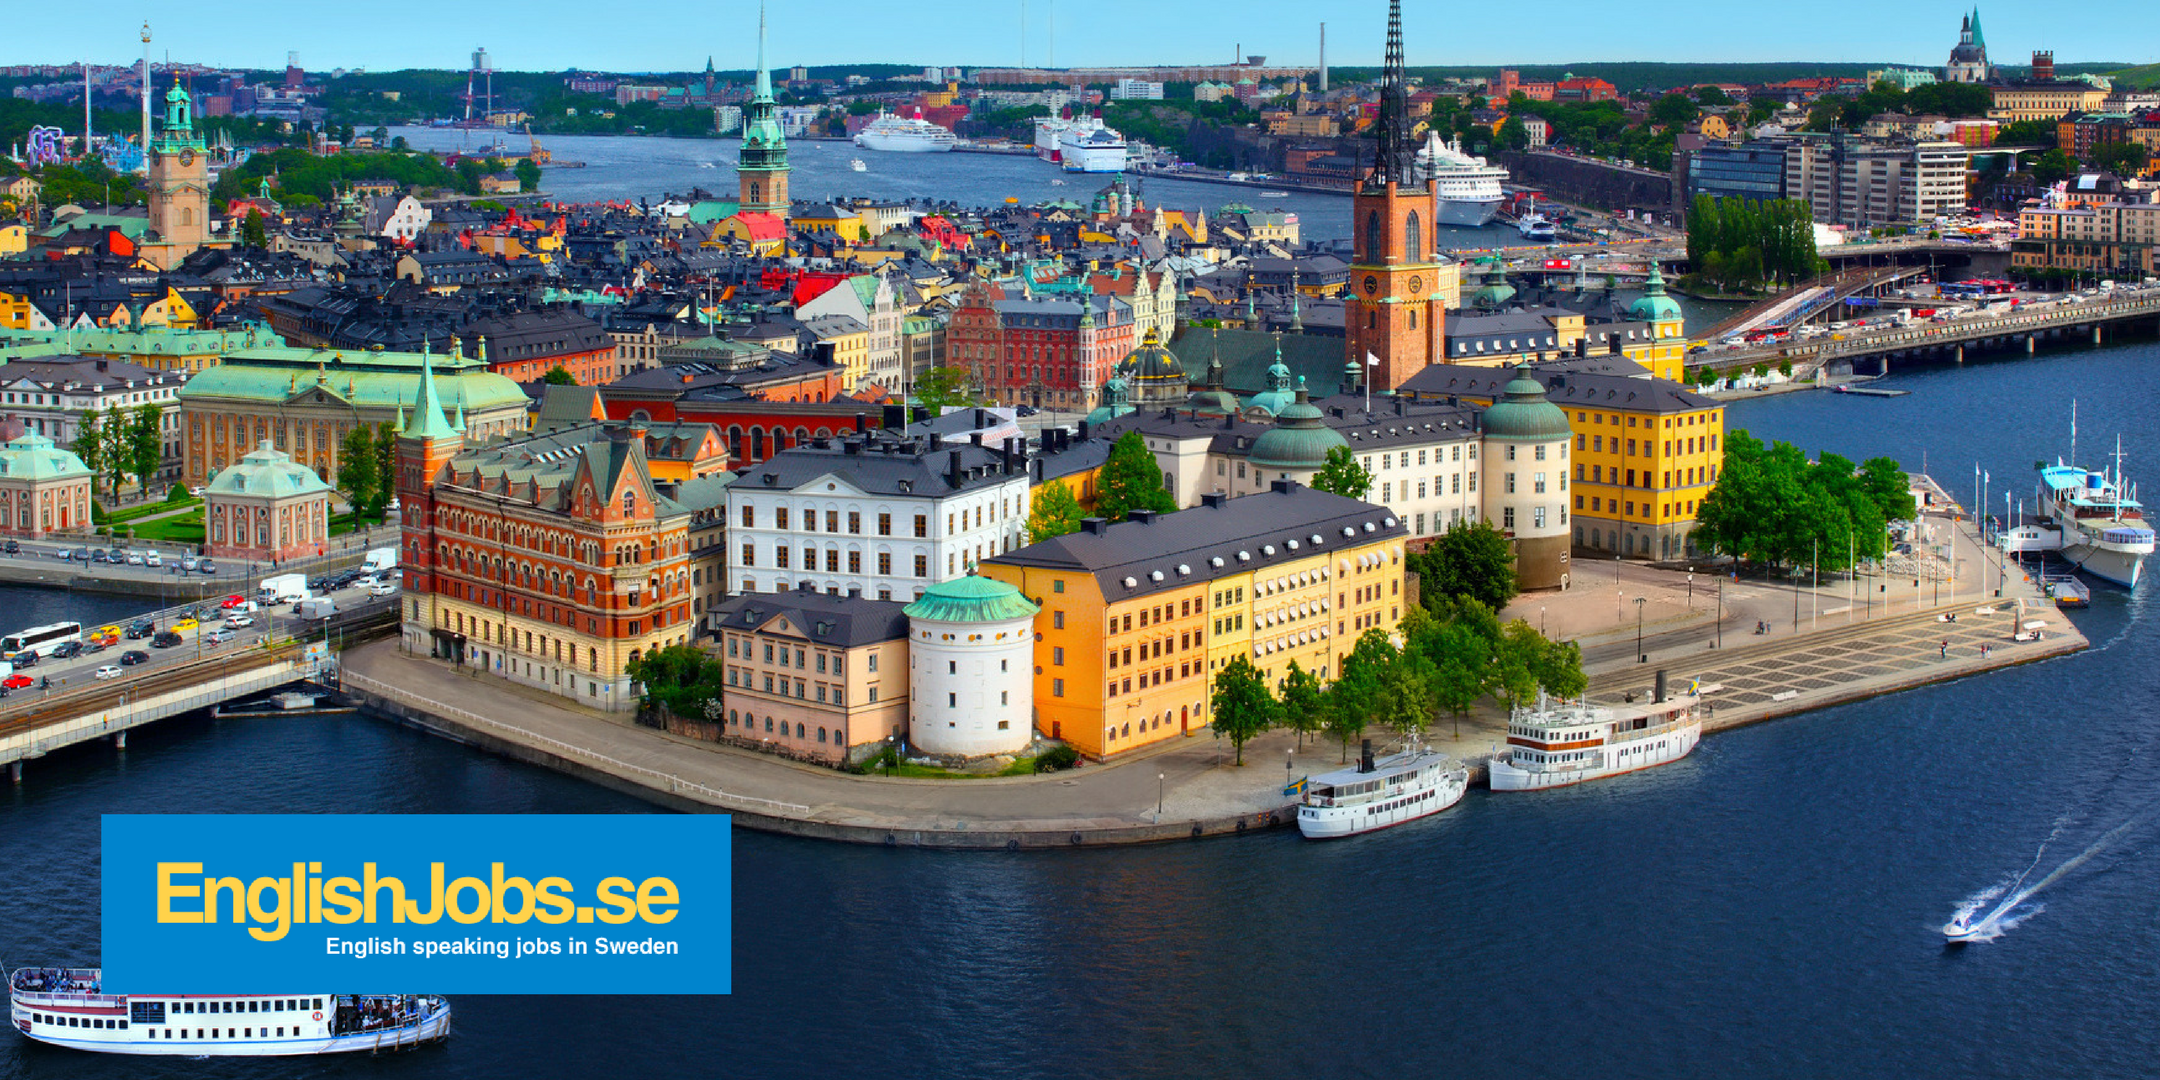 Work in Europe (Sweden, Denmark, Germany) - Your job search from Boston to Stockholm